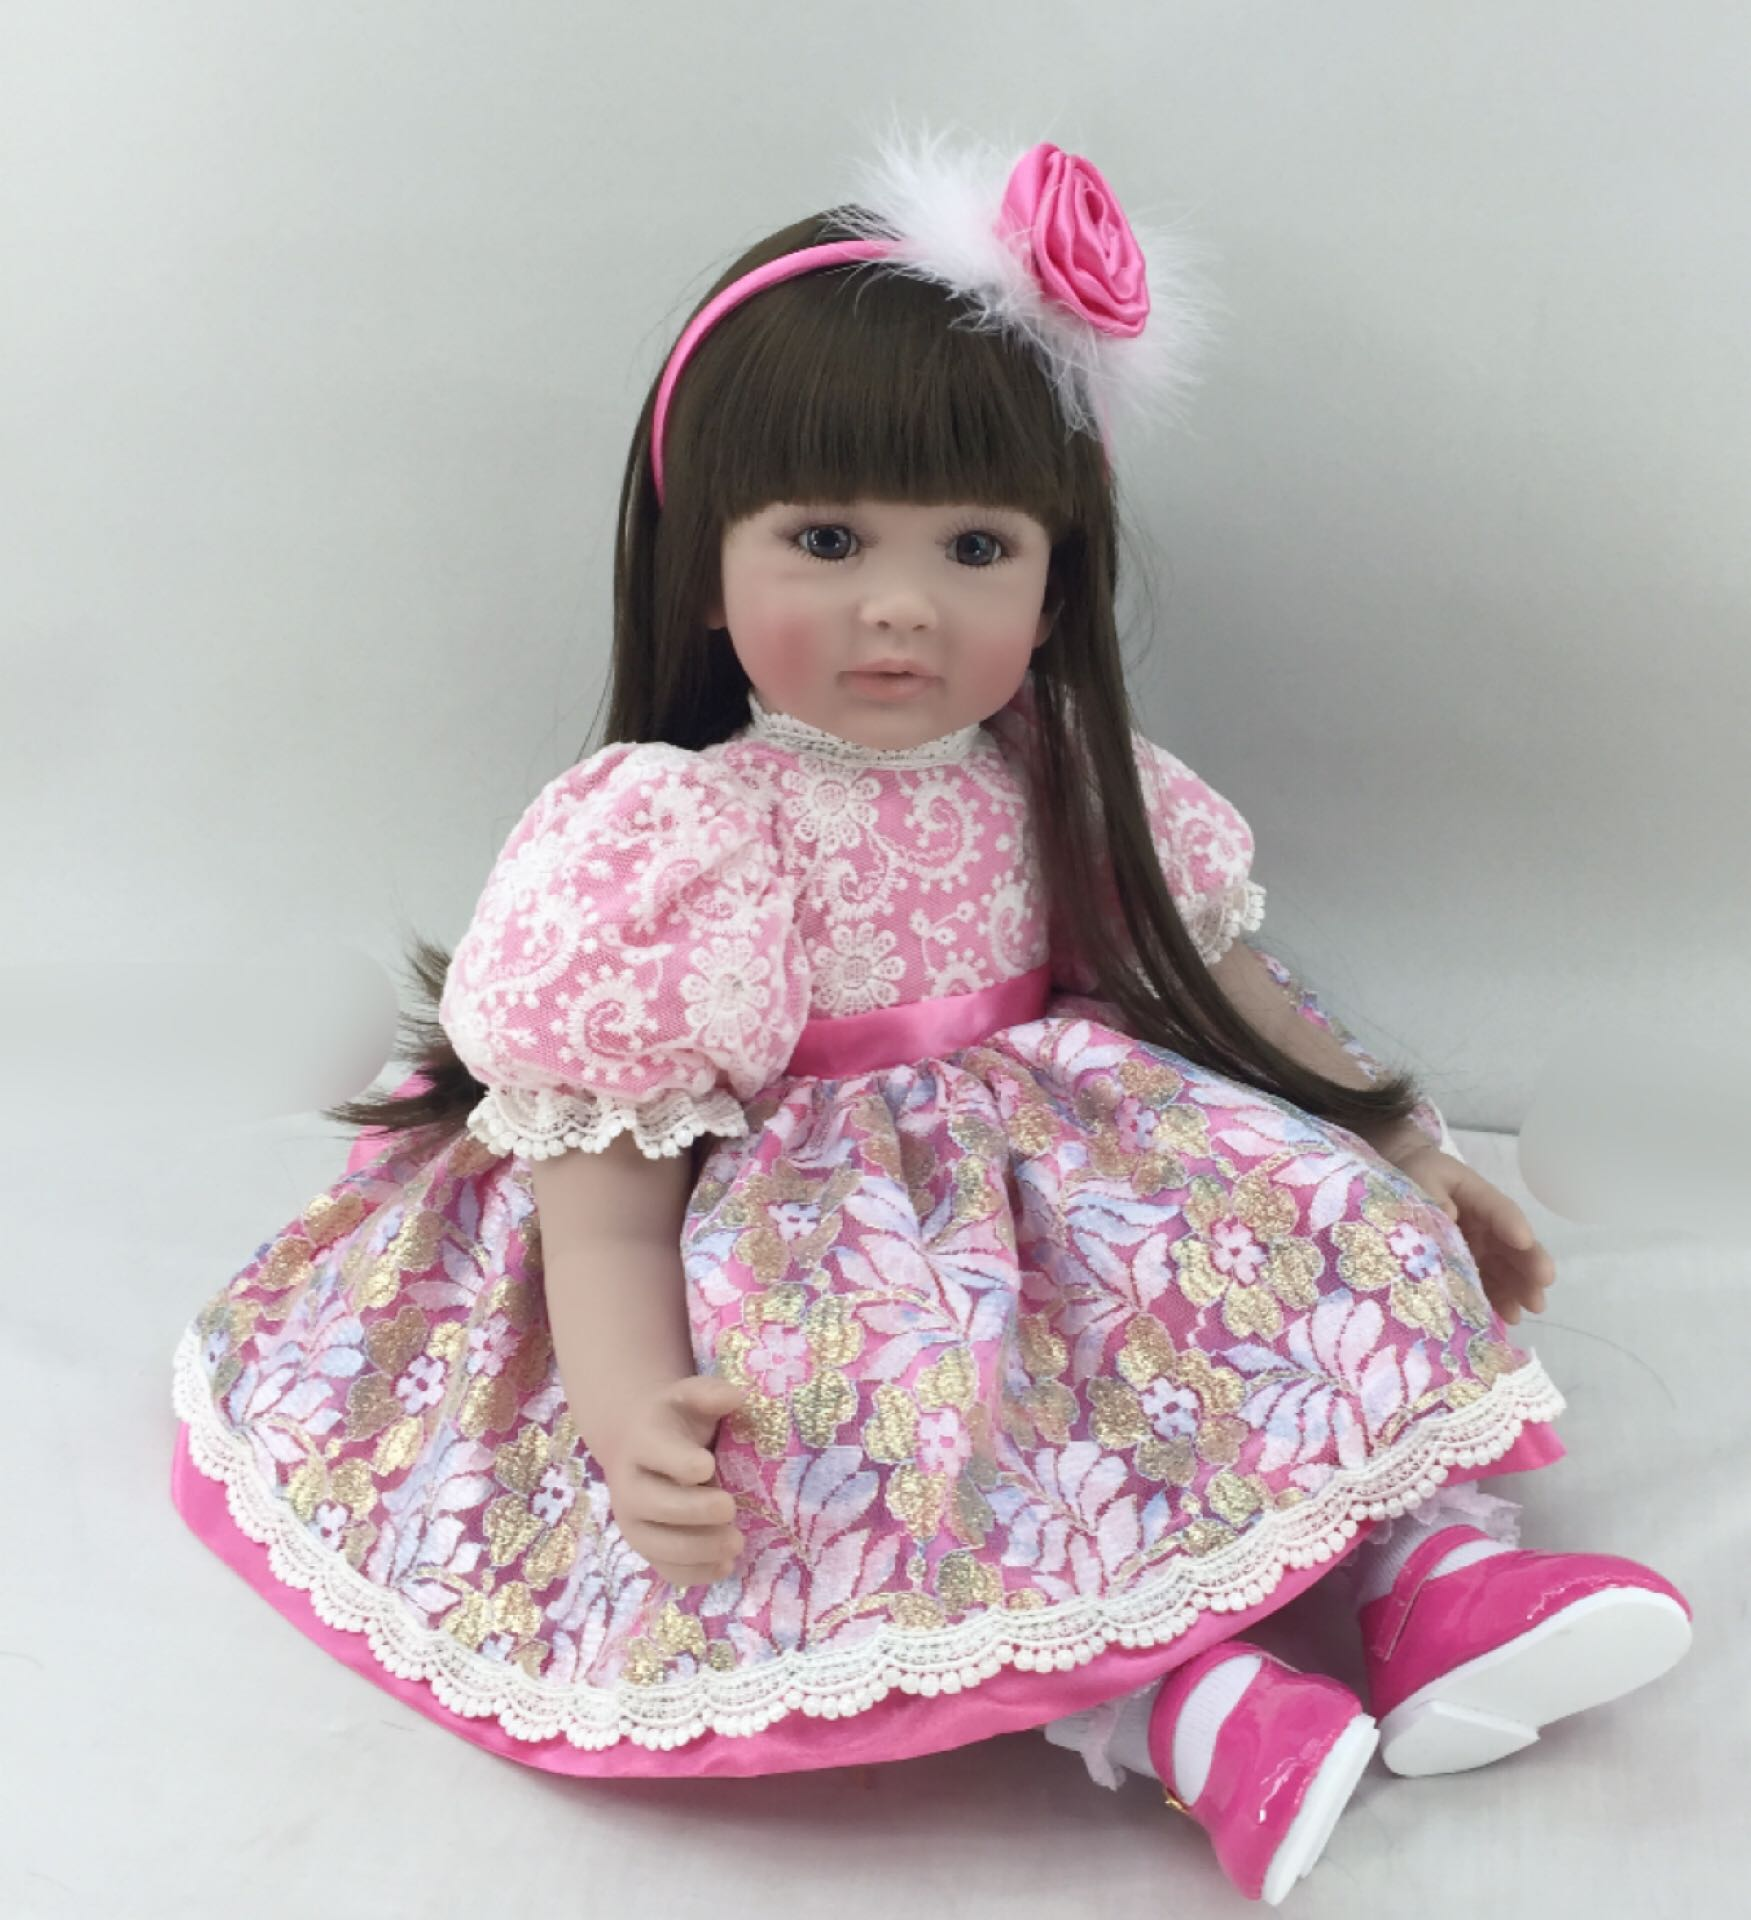 22inch soft Vinyl Lifelike Reborn Baby Doll Girl Christmas Toy Gift for Children Long Hair Princess Pink Dress Kids Playmates22inch soft Vinyl Lifelike Reborn Baby Doll Girl Christmas Toy Gift for Children Long Hair Princess Pink Dress Kids Playmates